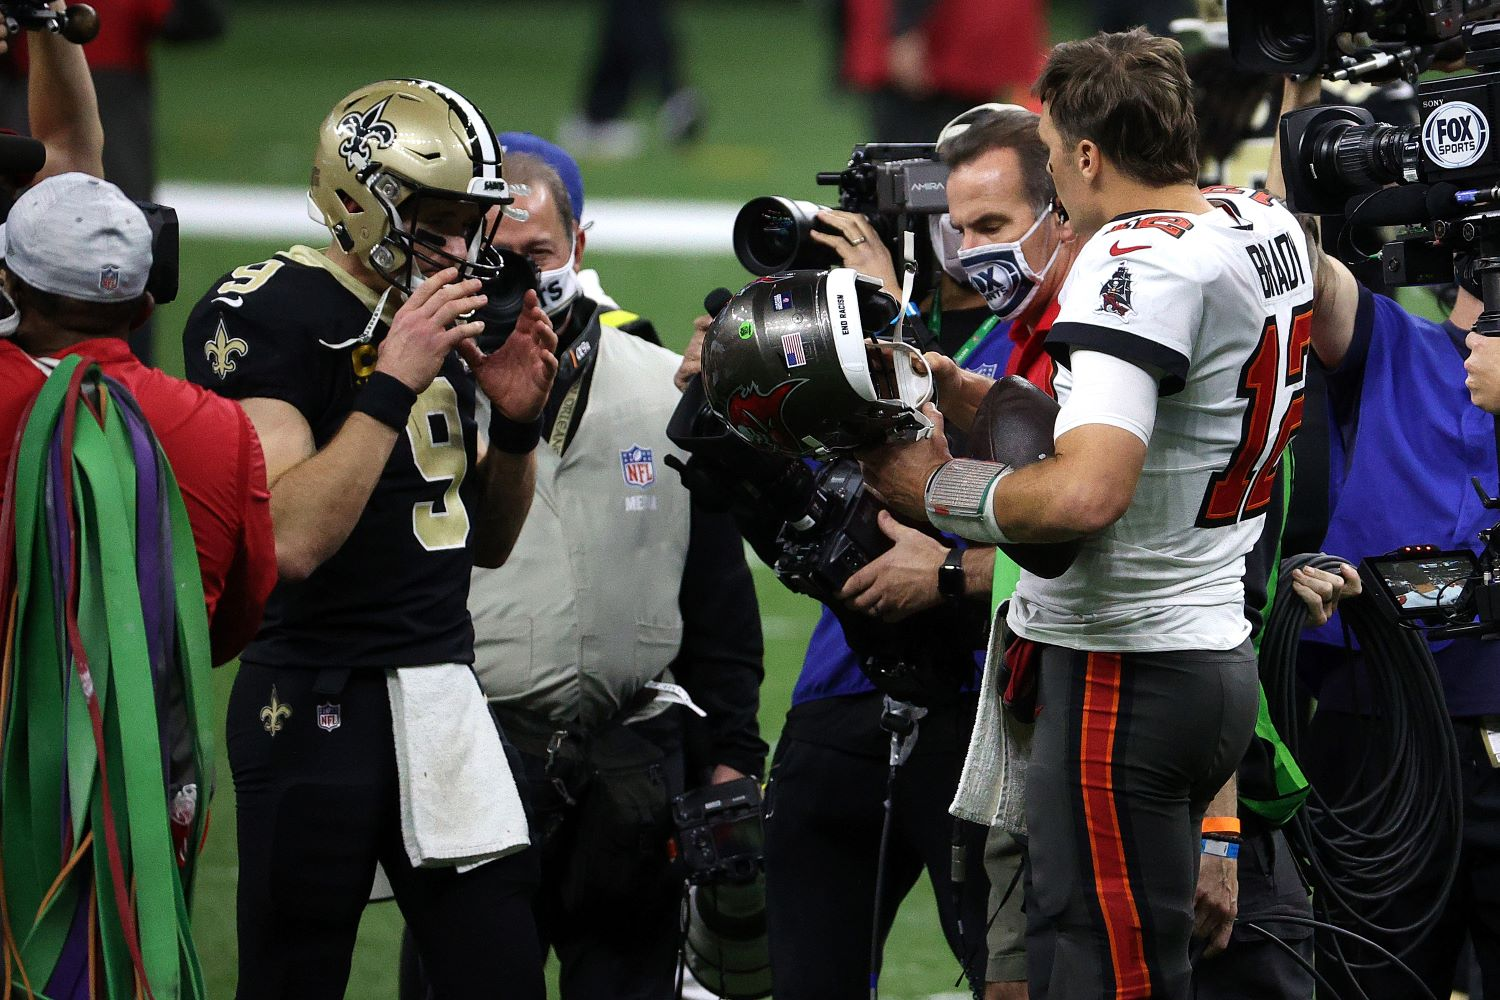 The Buccaneers officially owe Tom Brady $1.25 million thanks to Drew Brees delivering an absolutely horrific performance for the Saints.